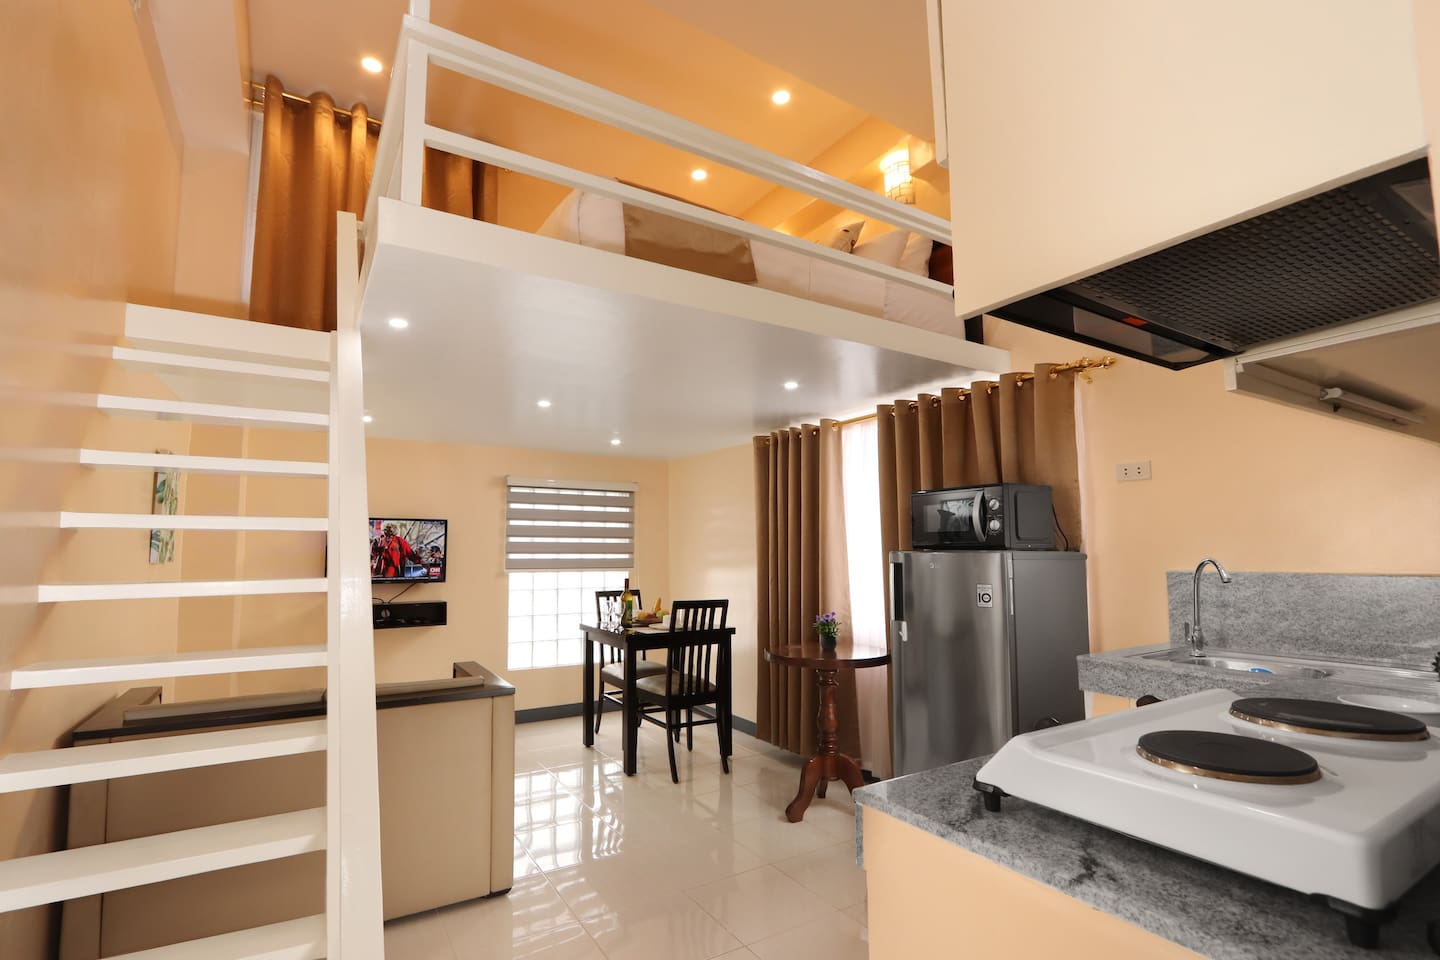 Rosetta Guest House Executive room is equipped with Refrigerator, Microwave Oven, Electric Cooker, Rice Cooker, Dining Essentials and Split Type AC.